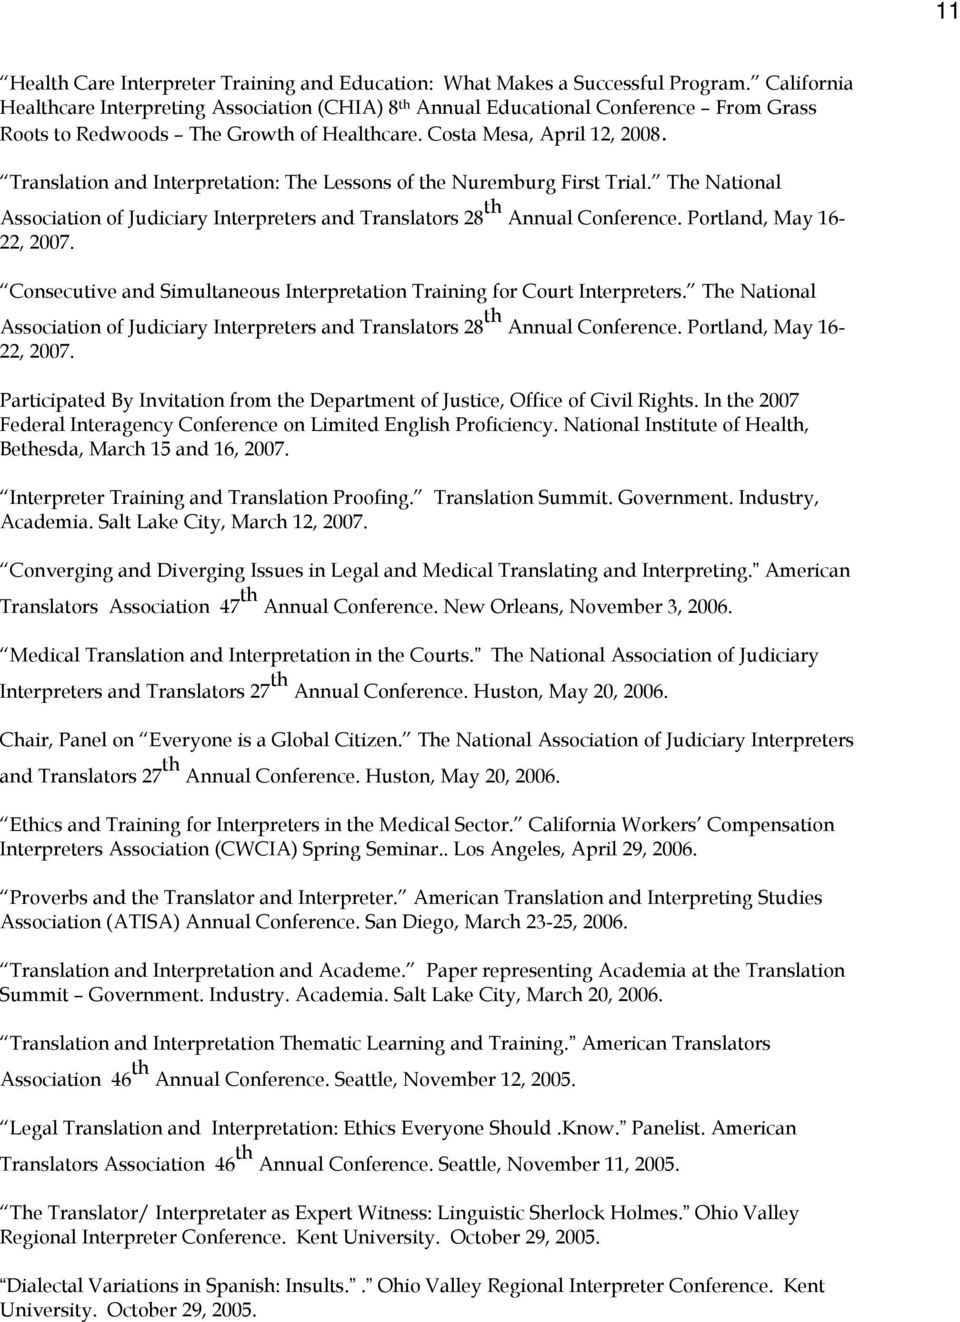 Translation and Interpretation: The Lessons of the Nuremburg First Trial. The National Association of Judiciary Interpreters and Translators 28 th Annual Conference. Portland, May 16-22, 2007.